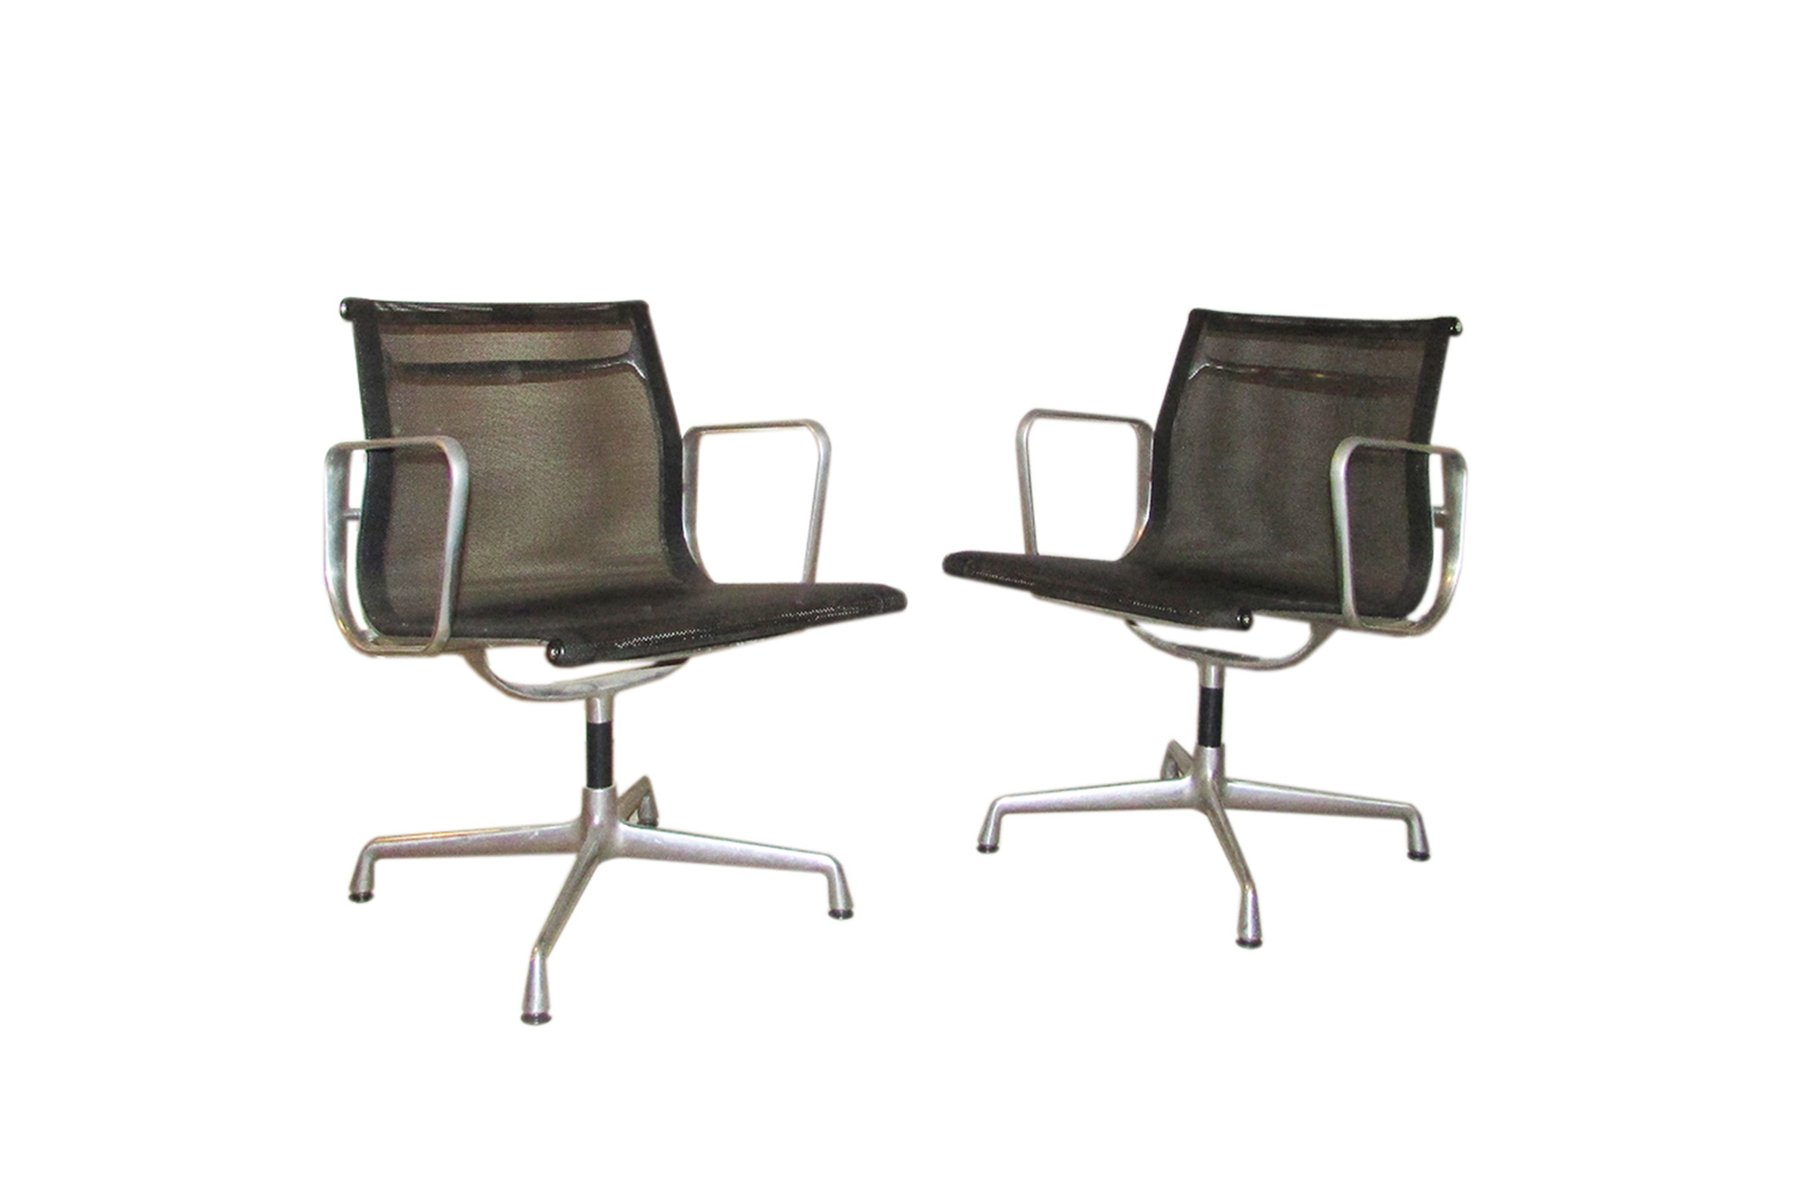 ea 107 aluminum chairs by charles ray eames for vitra 1982 set of 2 for sale at pamono. Black Bedroom Furniture Sets. Home Design Ideas